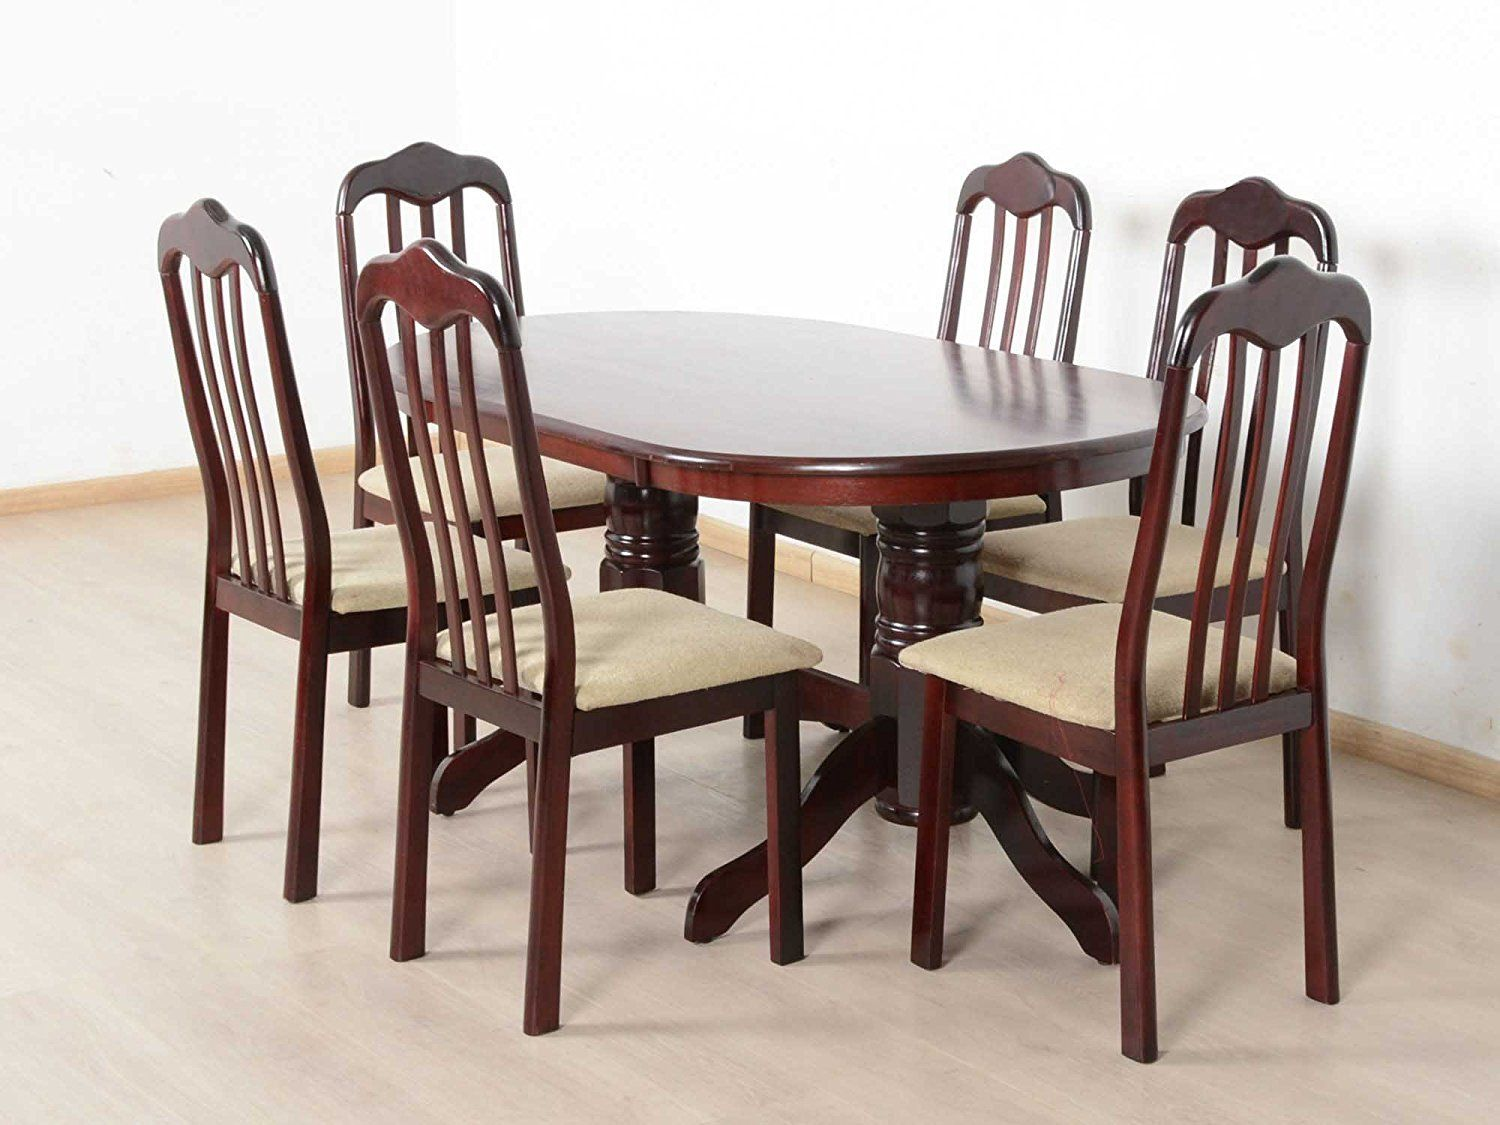 T2a Livez Six Seater Dining Table Set Oval Shaped Contemporary